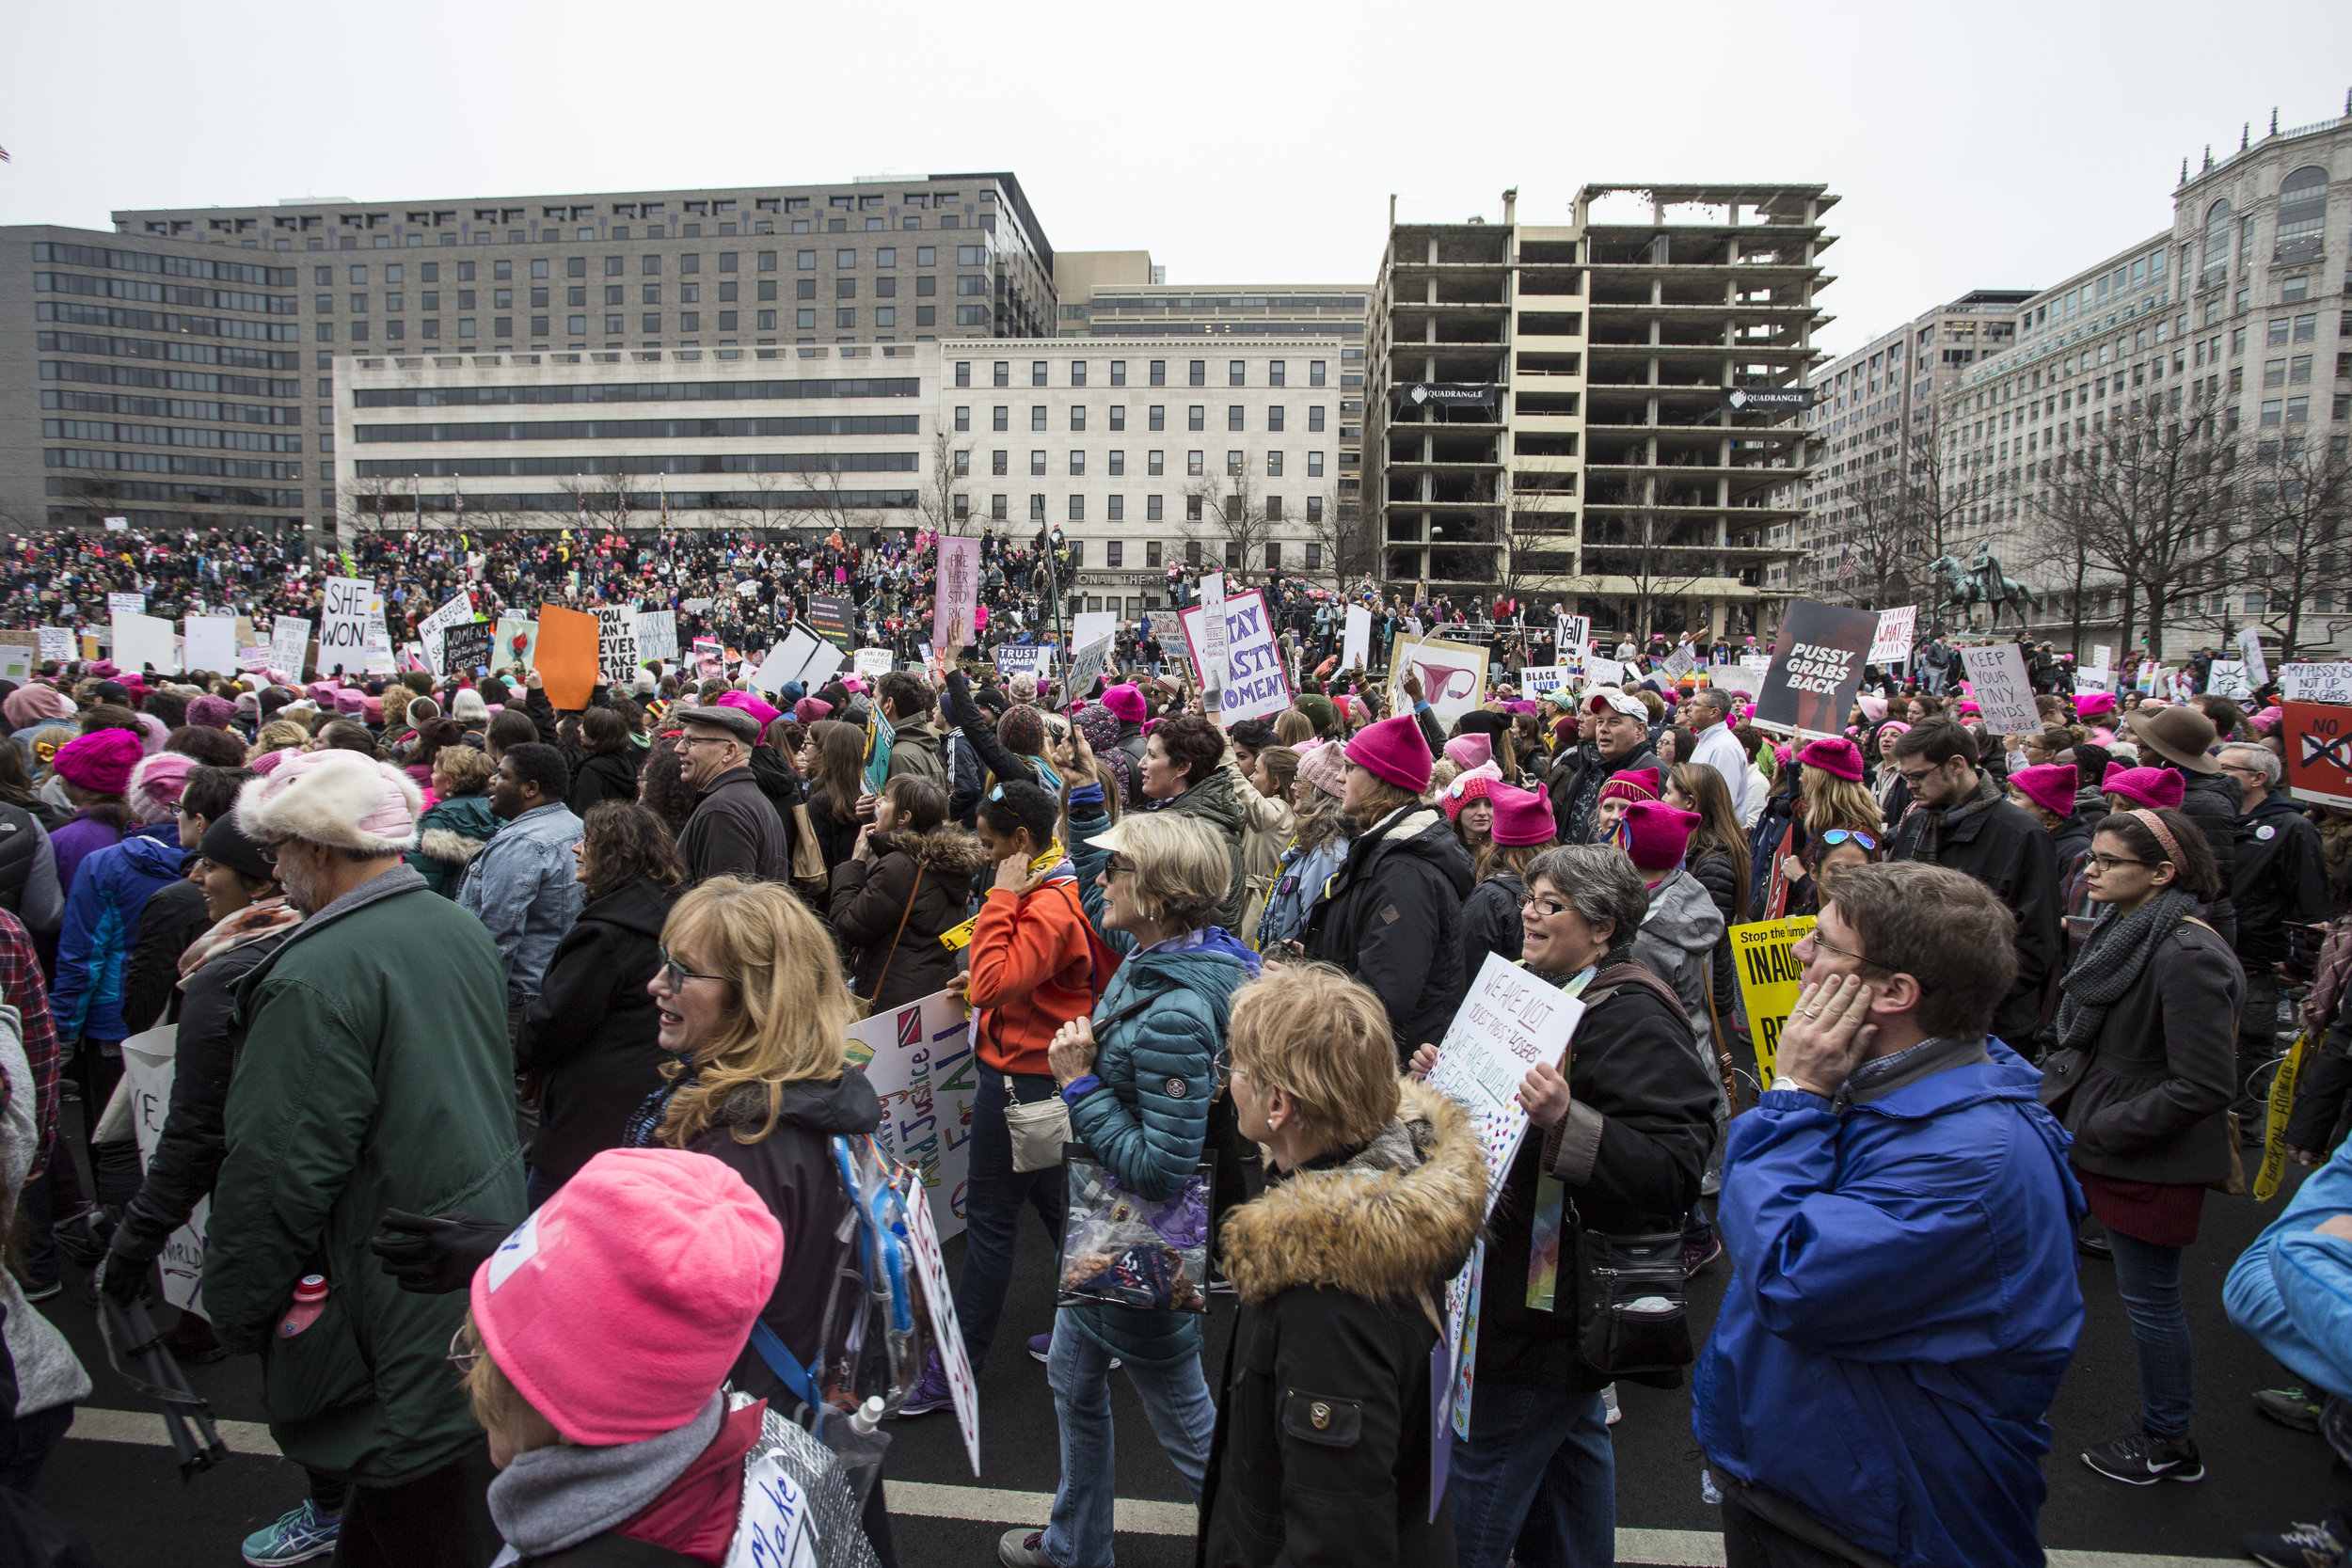 People participate in the 2017 Women's March on Washington DC on January 21st